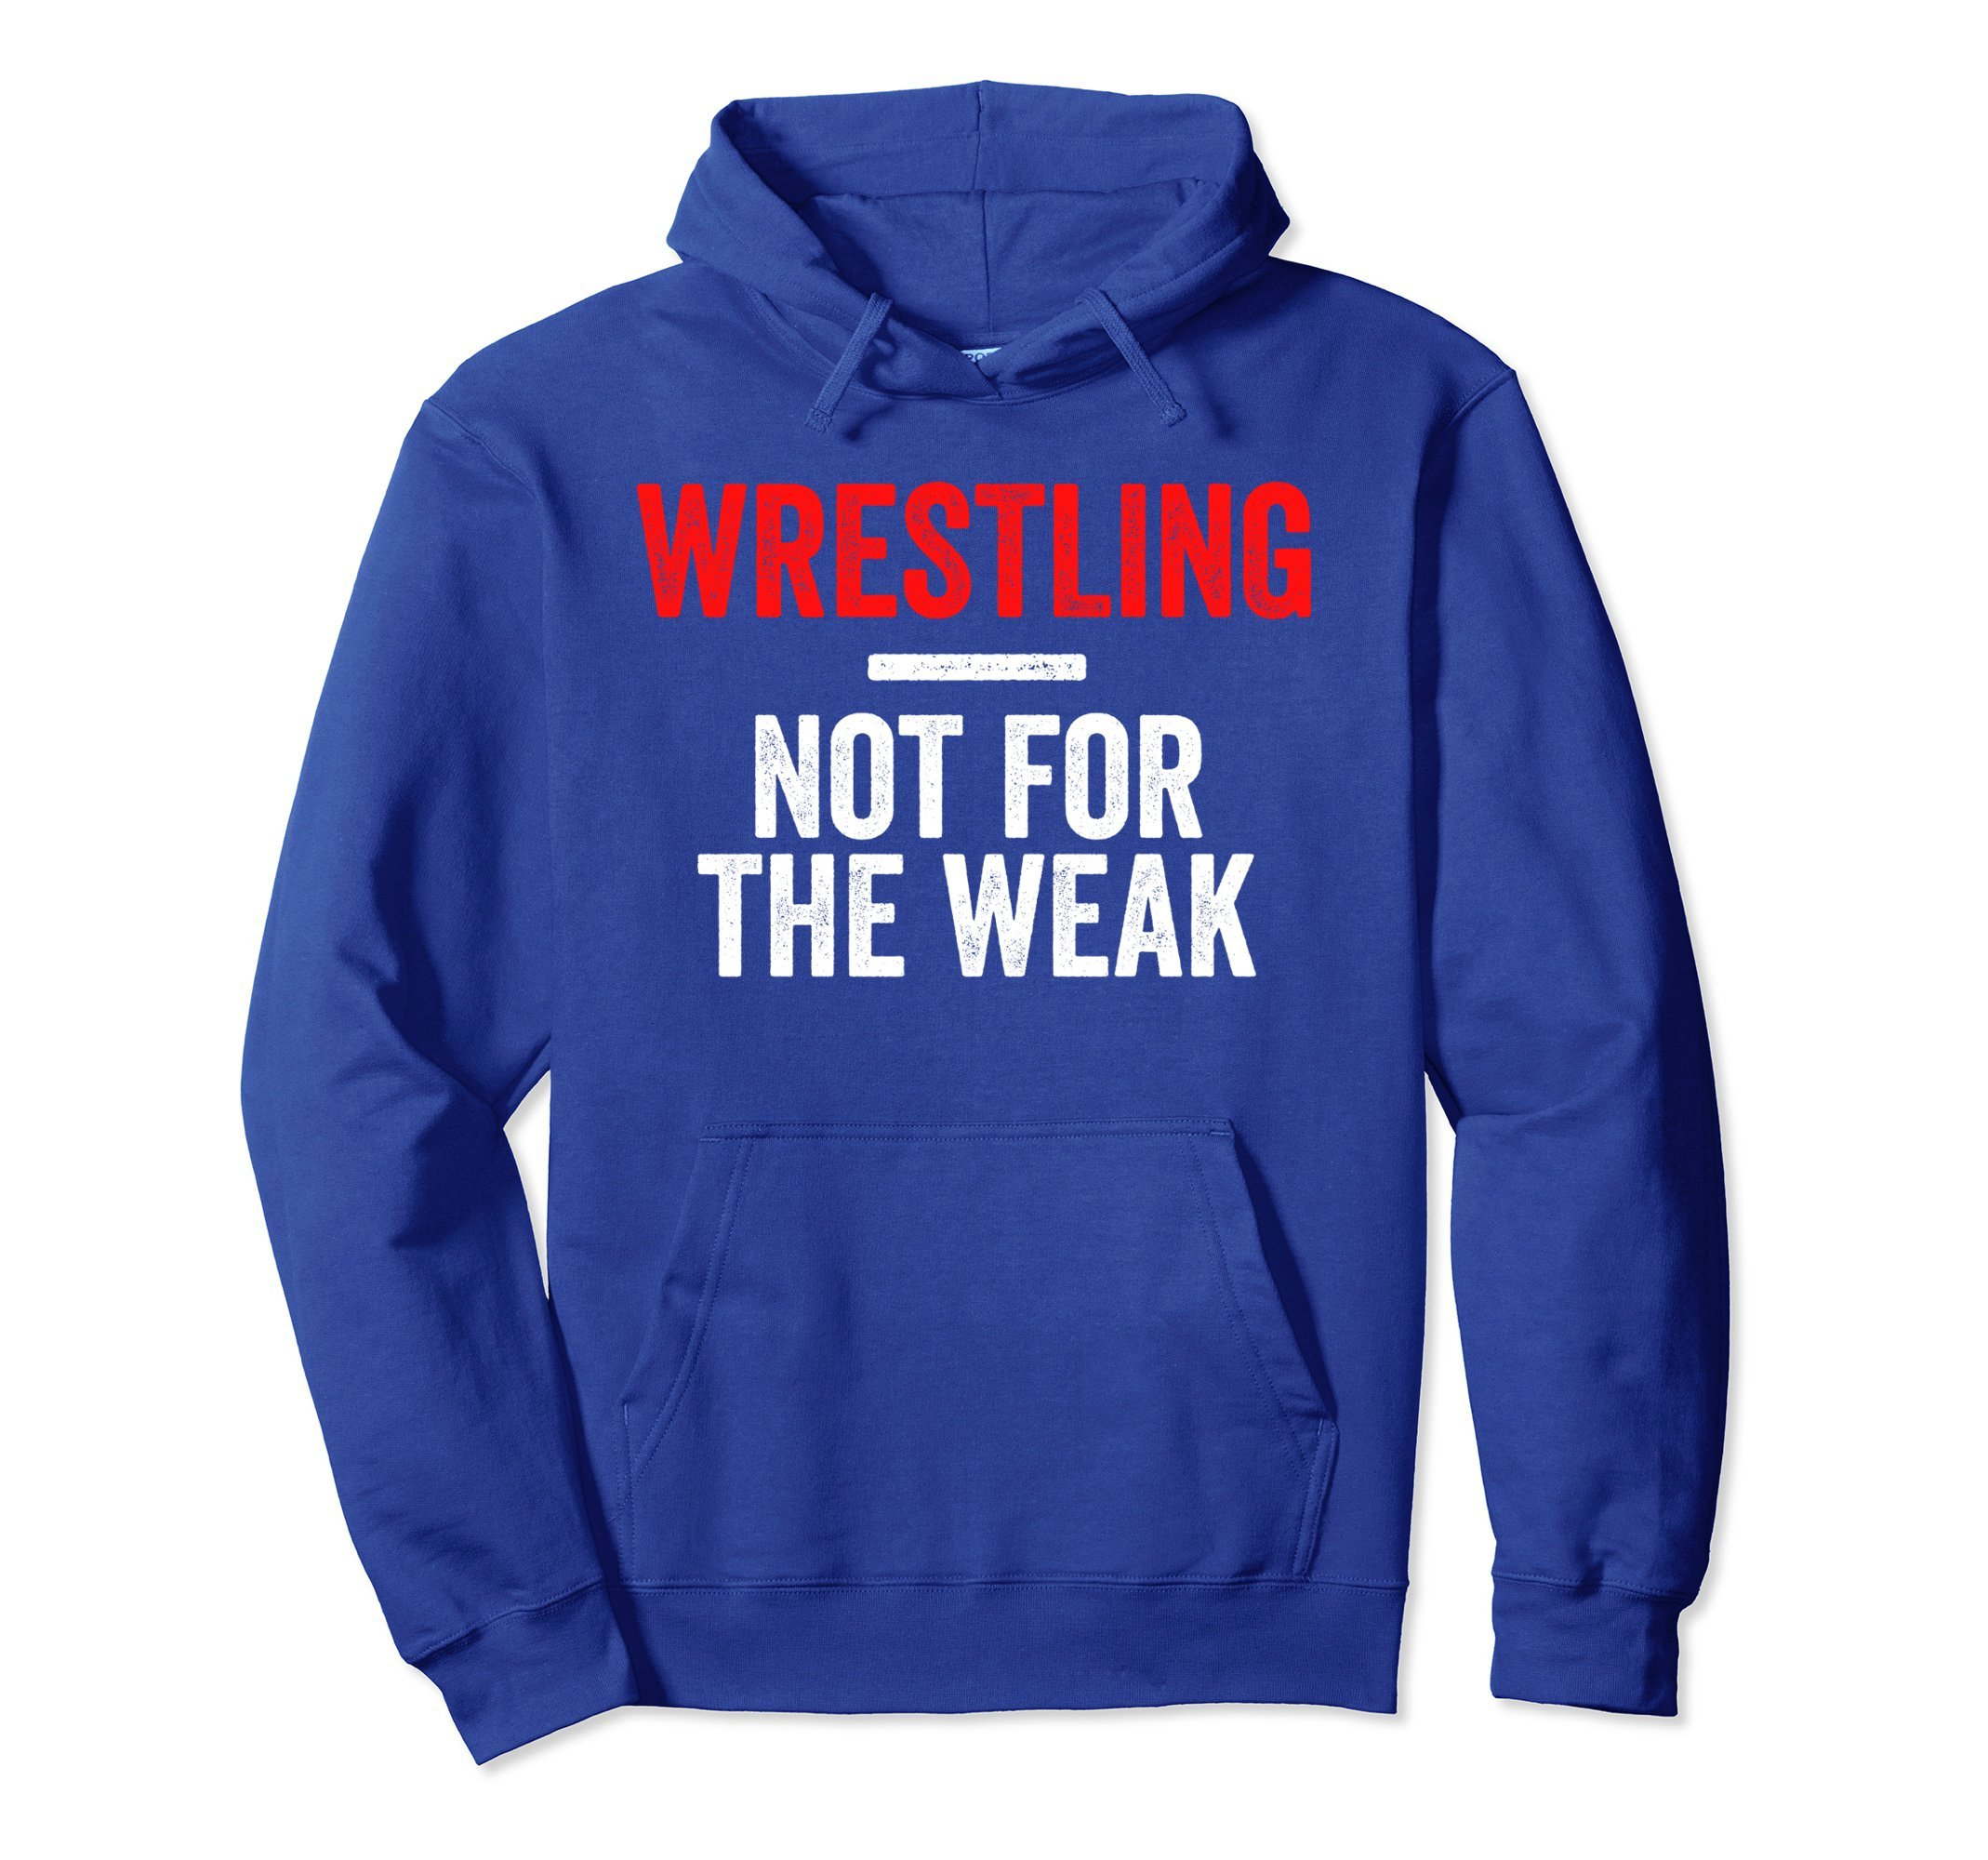 Unisex Not For The Weak Wrestling Hoodie for Wrestlers, Gift, Red Large Royal Blue by Wrestling Shirts and Wrestling Shoes